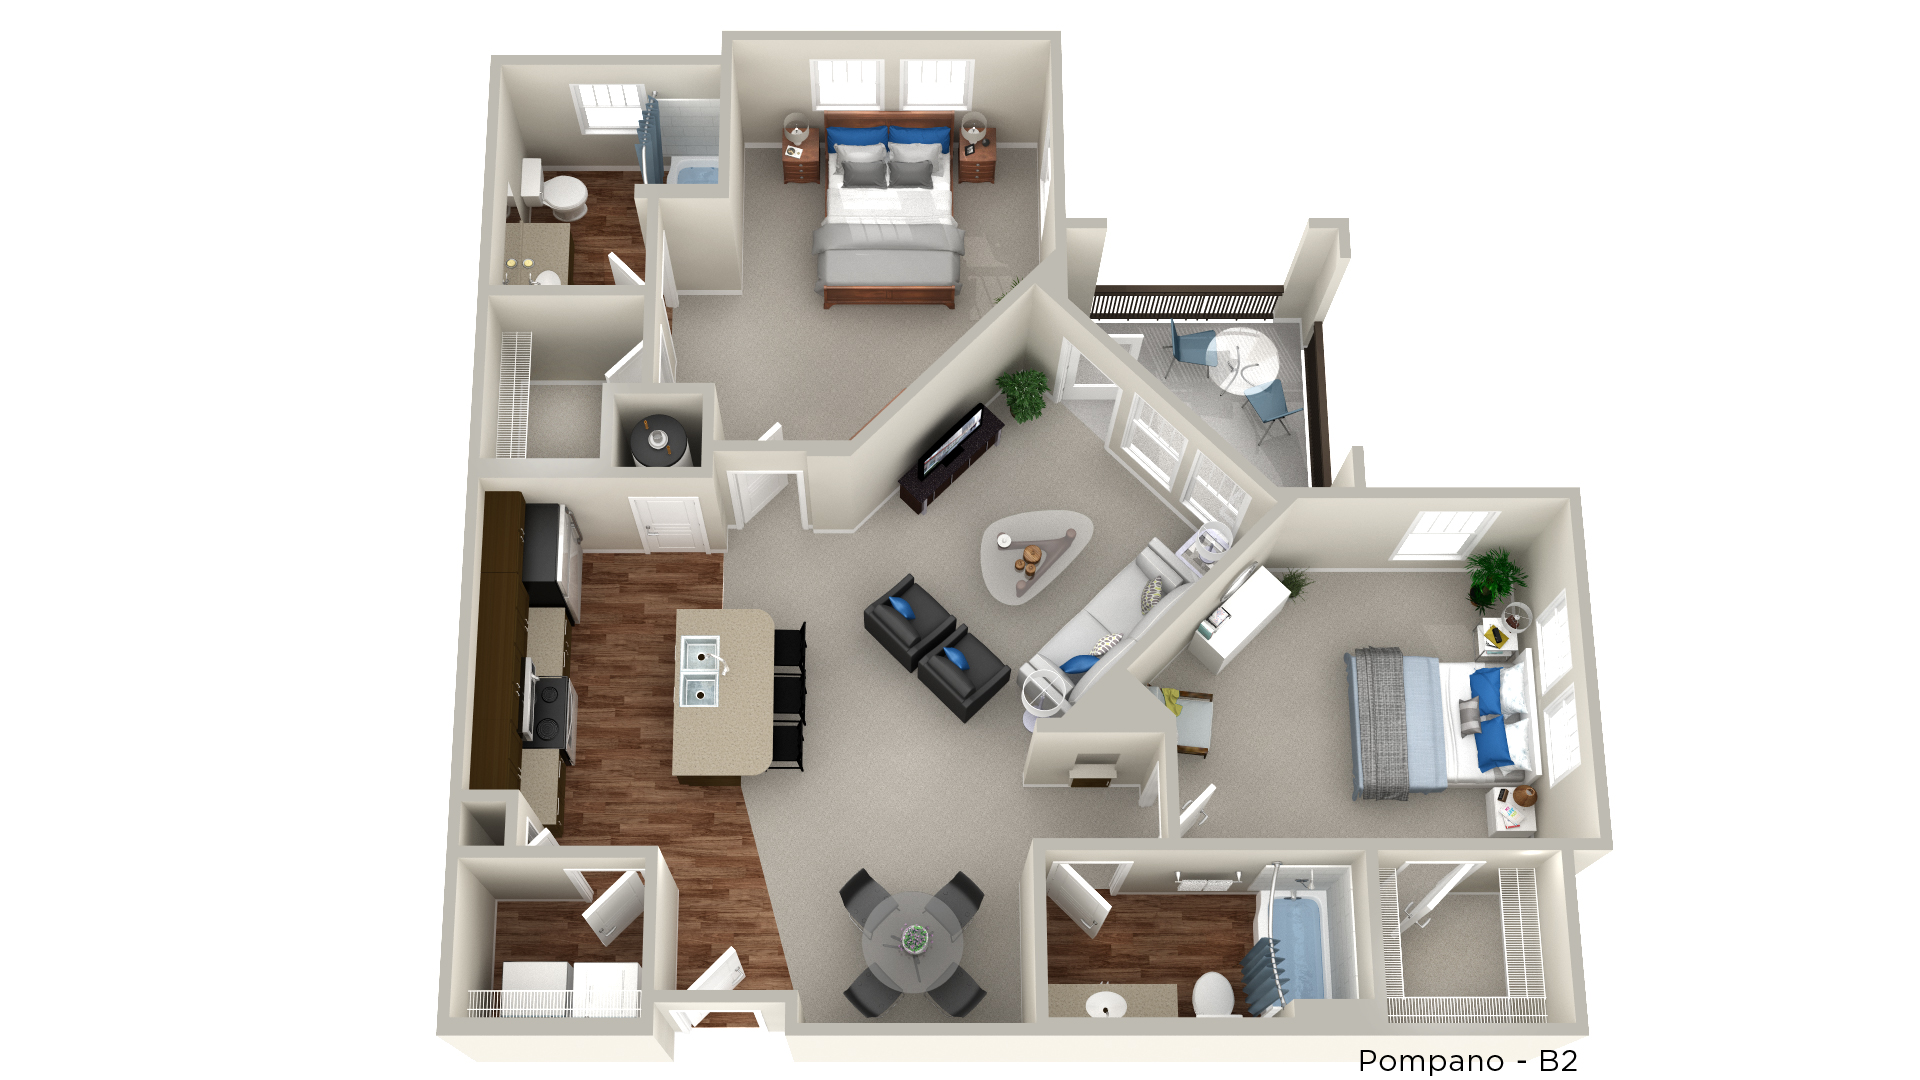 Whitepalm Luxury Apartment Homes - Floorplan - Pompano